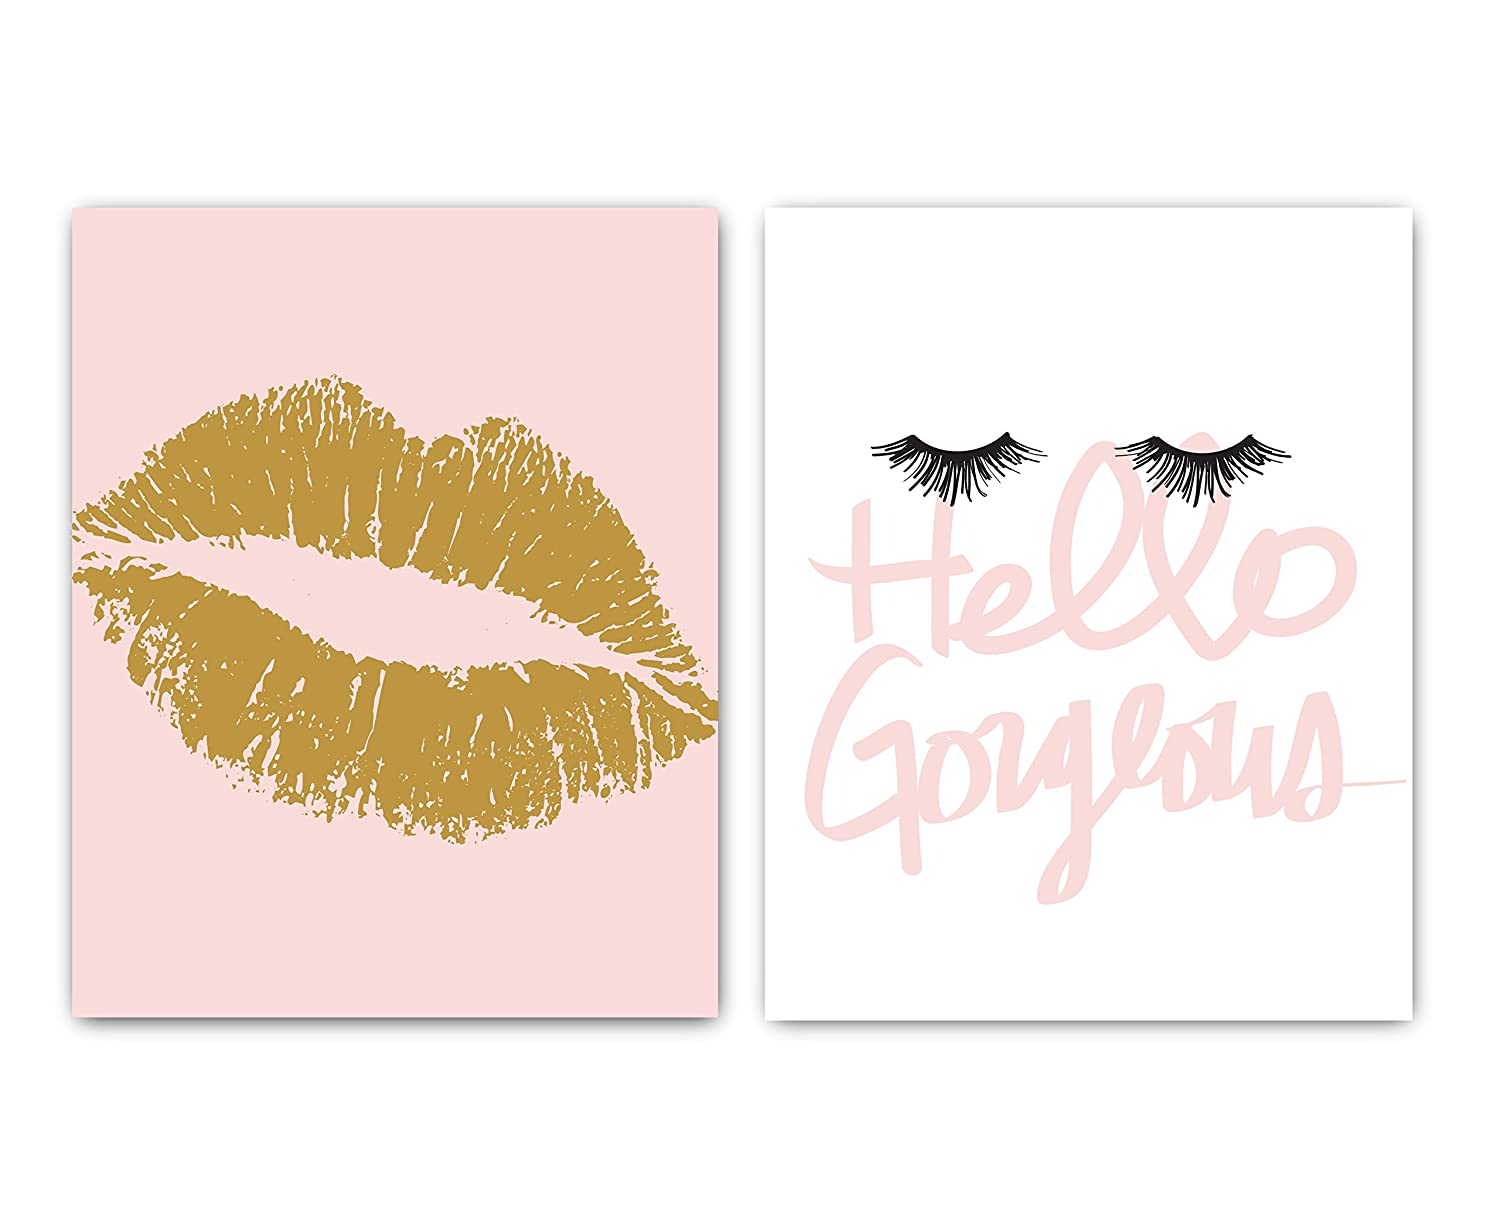 Fashionista Prints - Set of 2 UNFRAMED Lips & Lashes Wall Art Decor Prints 8x10